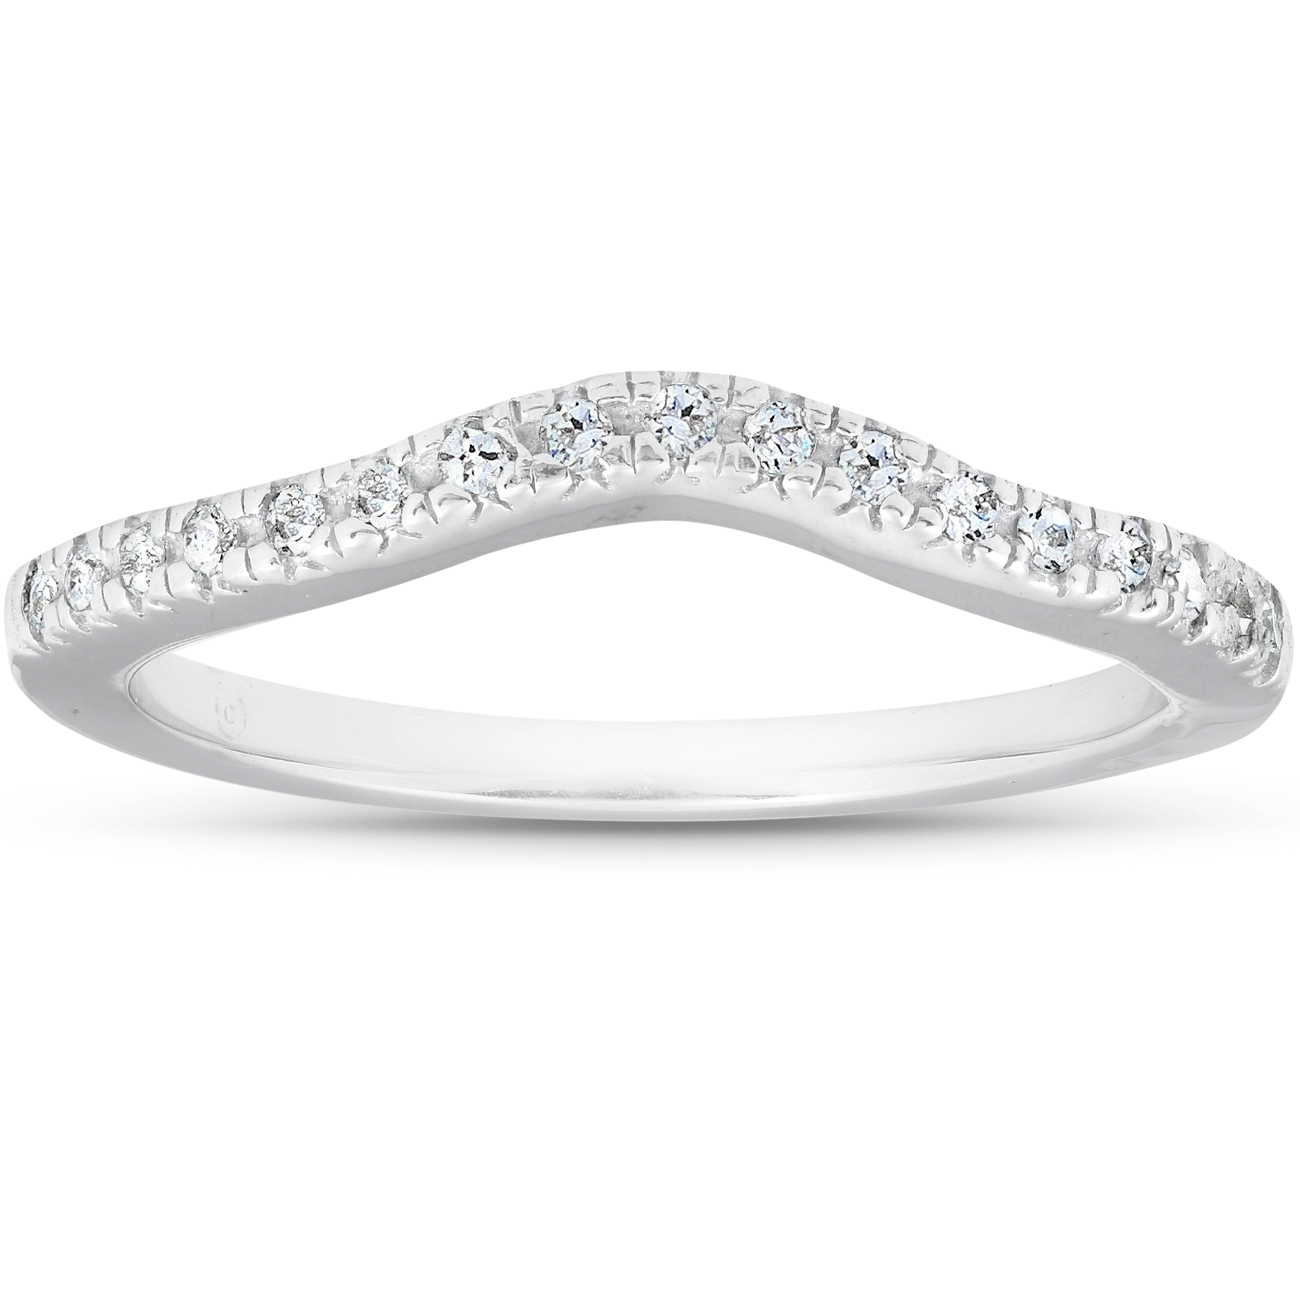 Details About 1/8 Ct Curved Diamond Contour Wedding Engagement Notched Ring 14k White Gold With Regard To Most Current Certified Princess Cut Diamond Contour Anniversary Bands In White Gold (View 6 of 25)